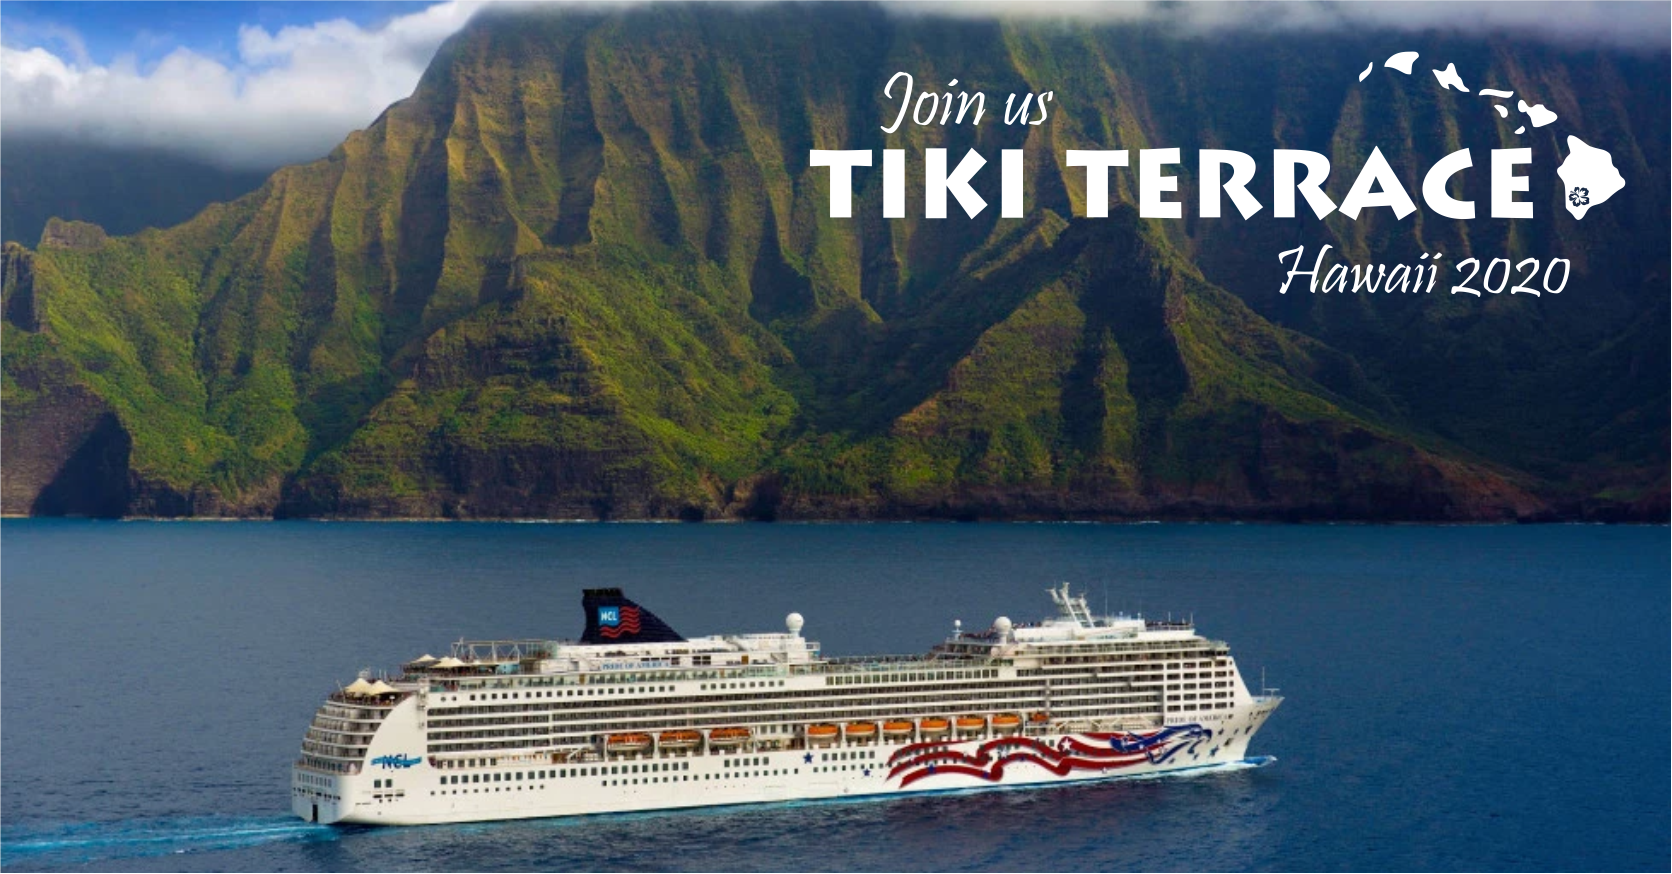 This amazing 7 day cruise will truly be an unforgettable experience